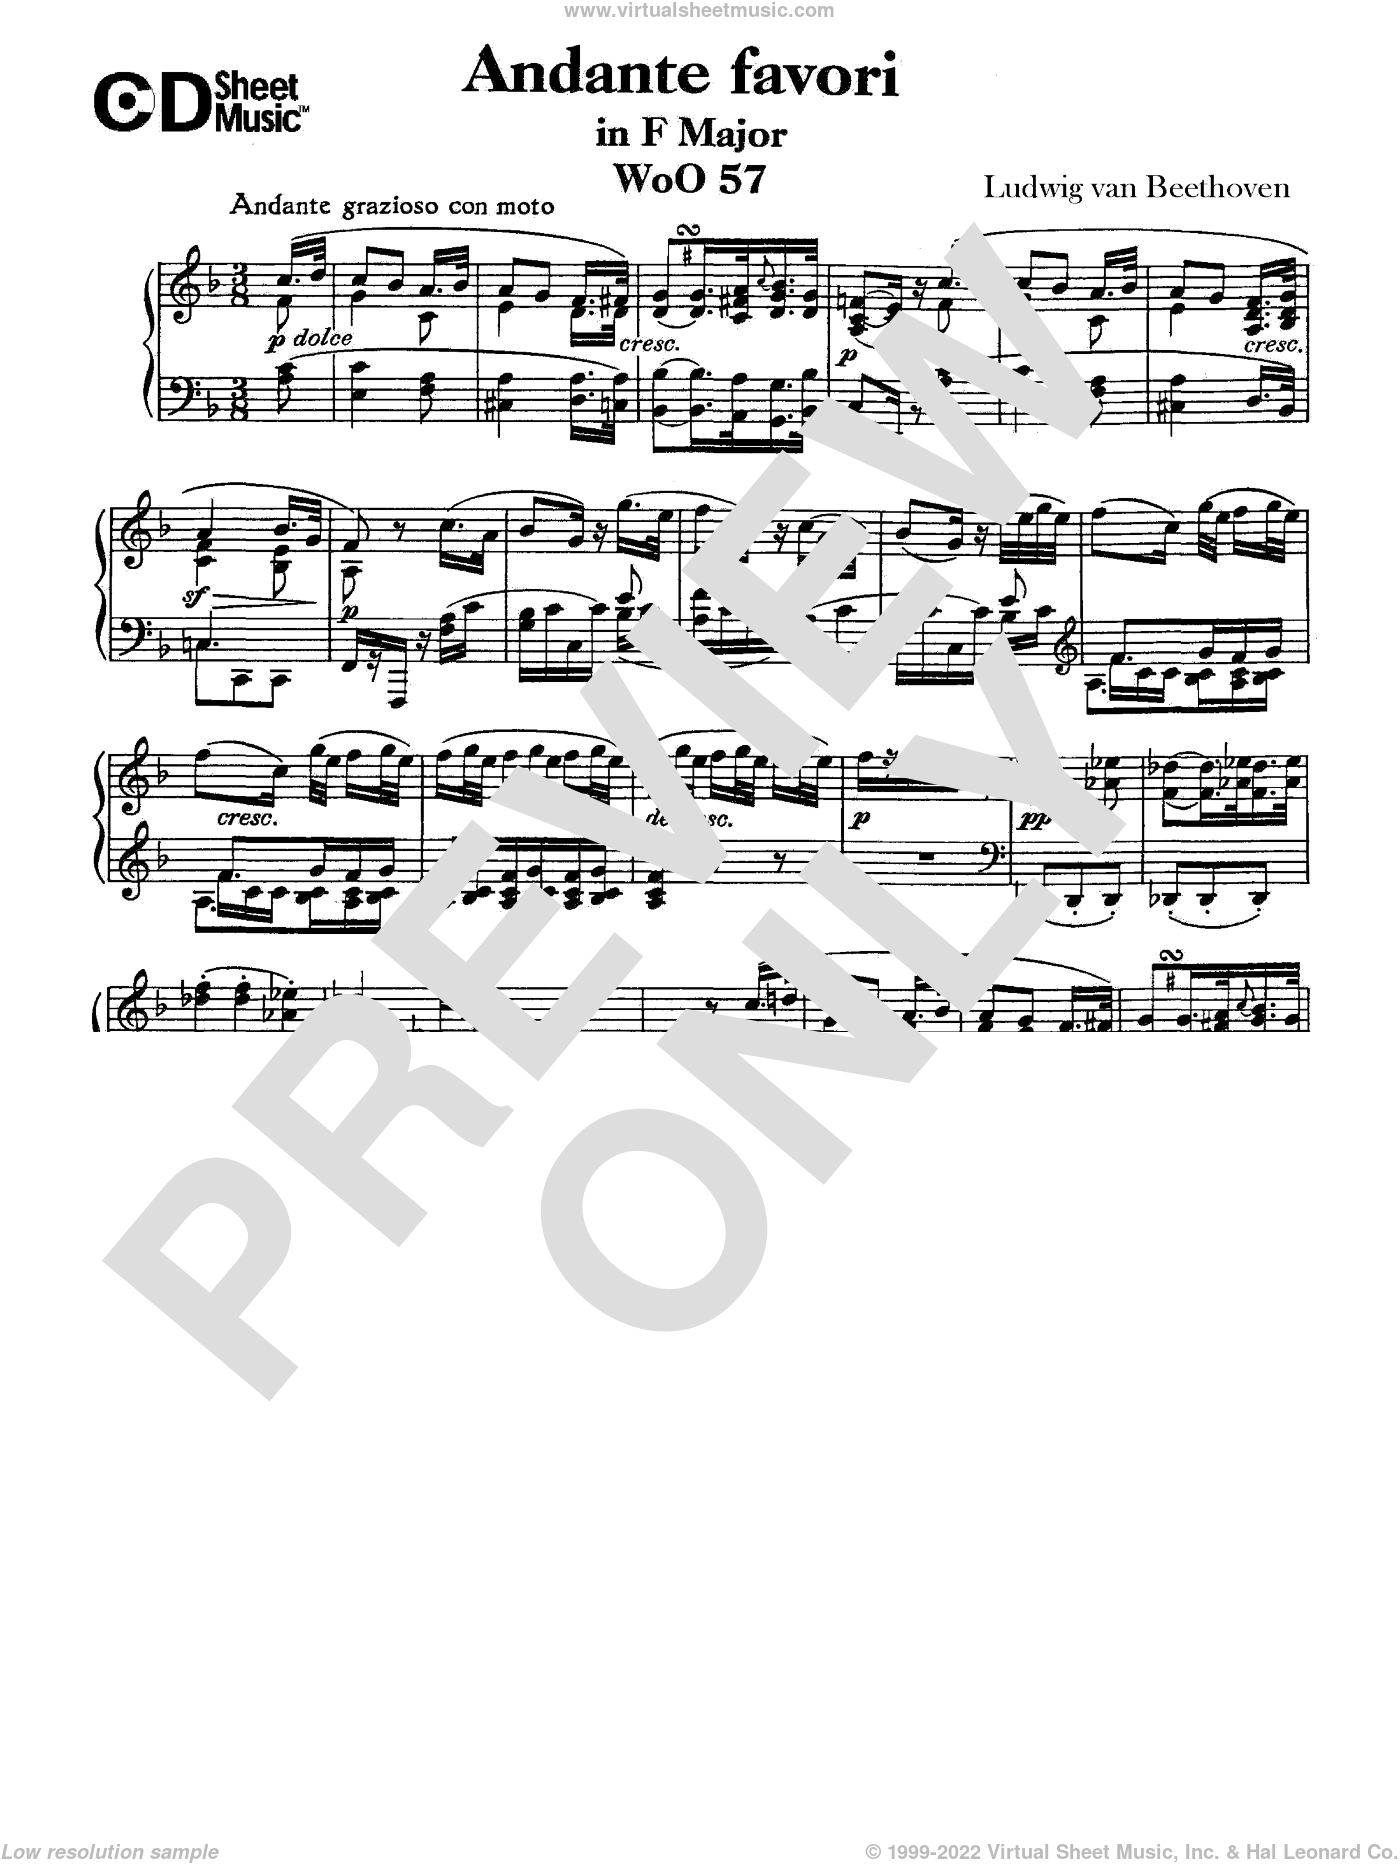 Andante Favori in F Major, WoO 57 sheet music for piano solo by Ludwig van Beethoven, classical score, intermediate skill level